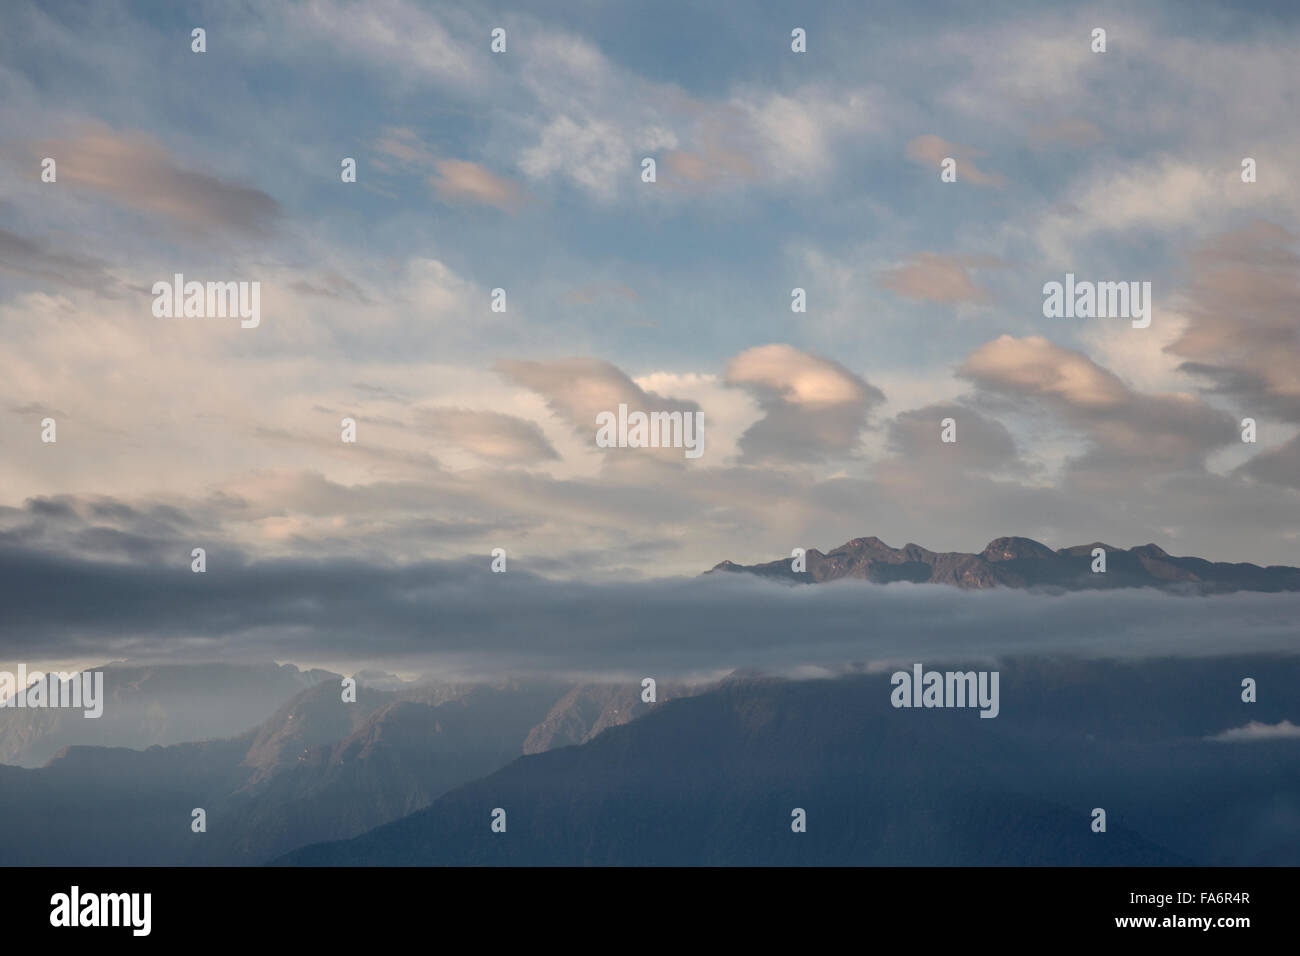 Dawn view of Black Mountains over Trongsa valley Bhutan - Stock Image